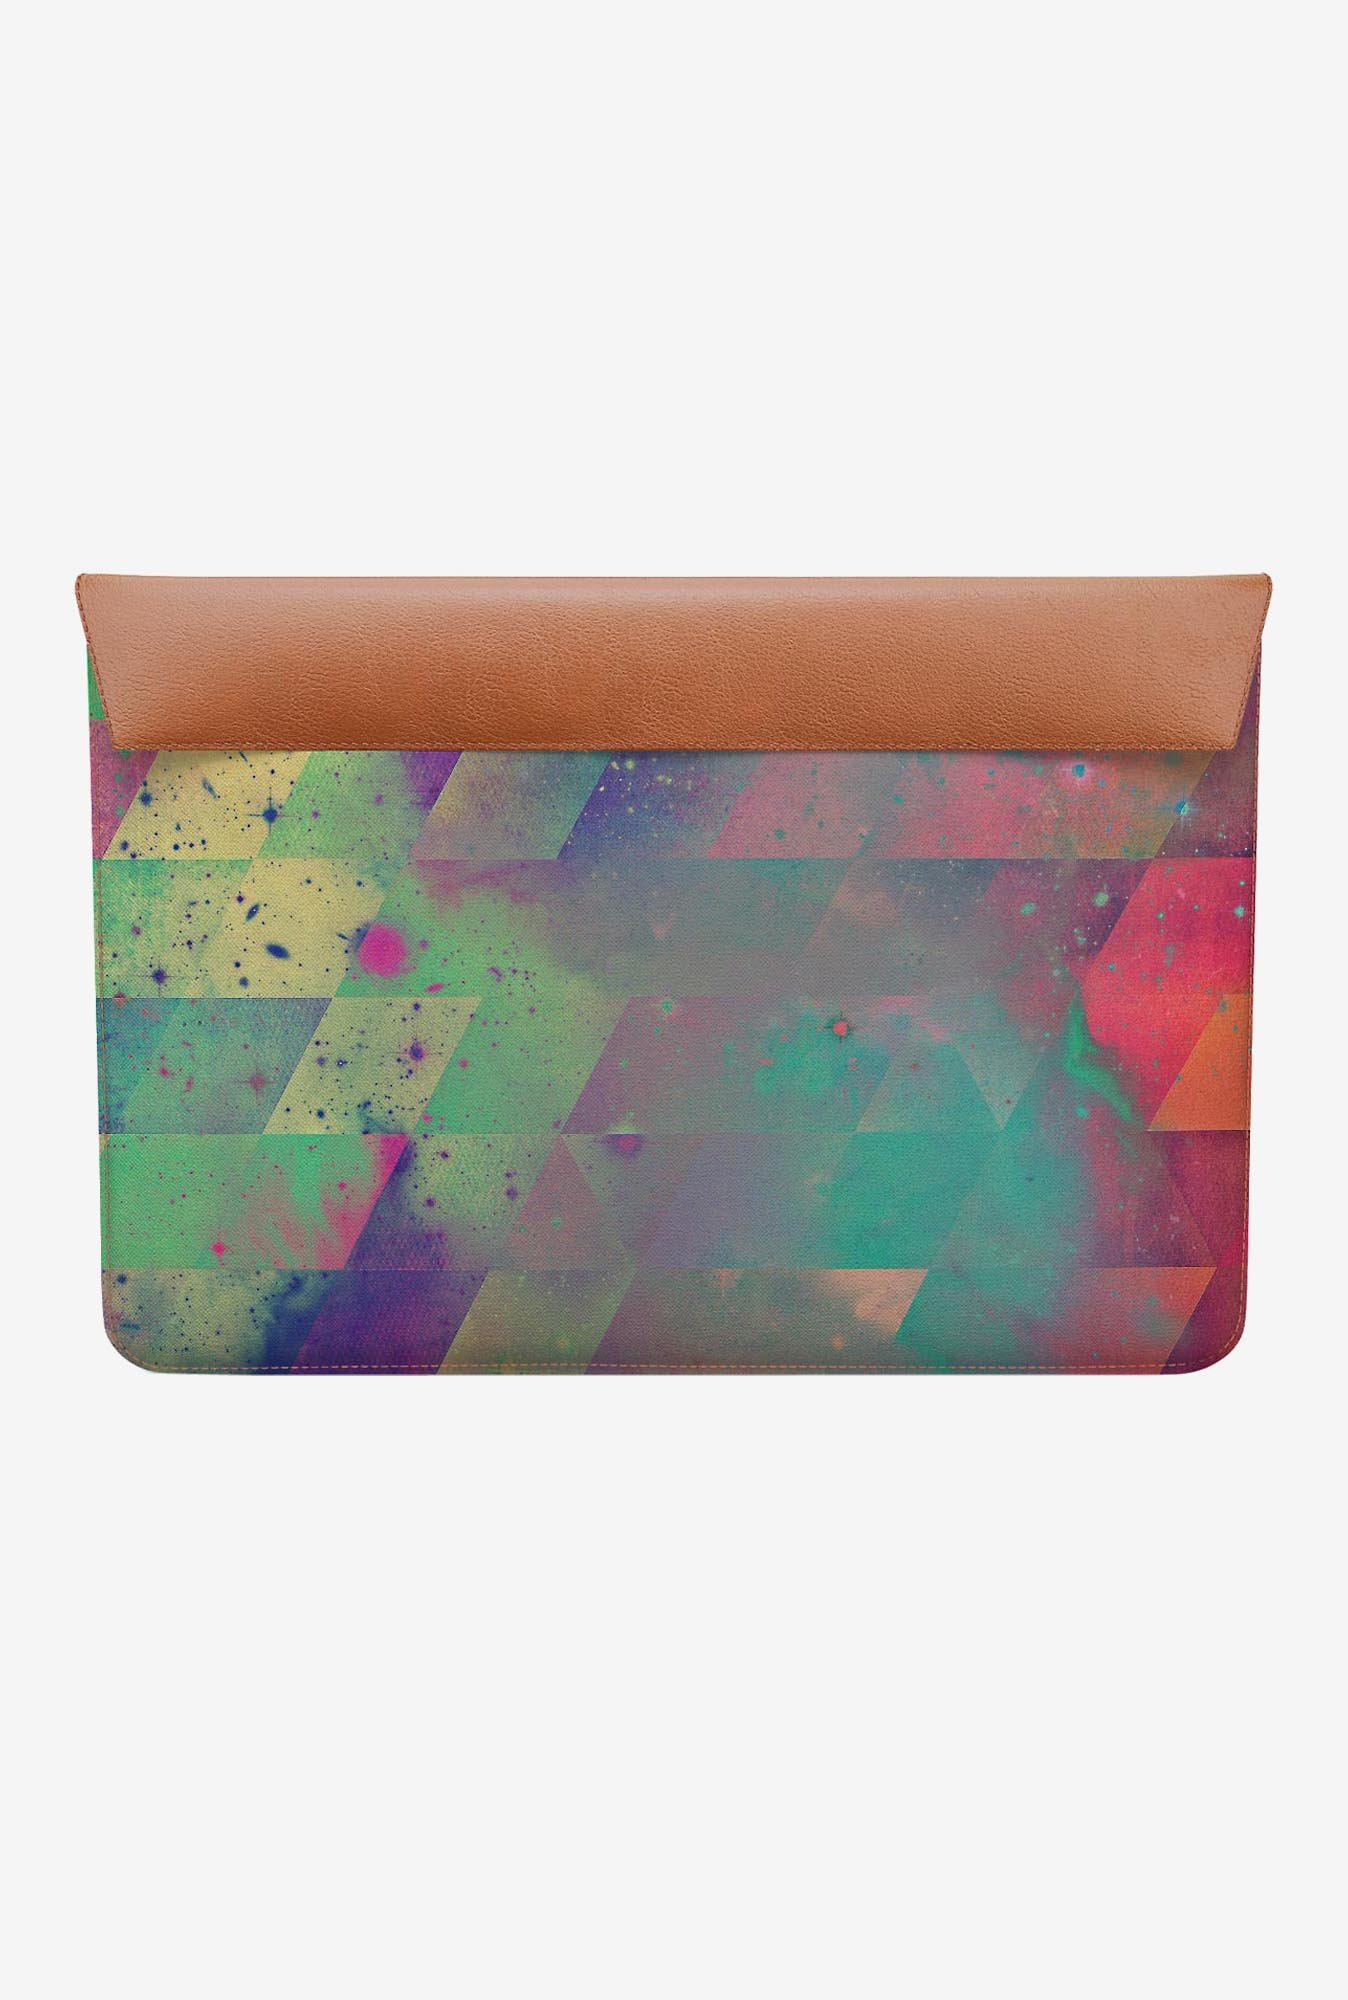 "DailyObjects Byby Vy Macbook Air 11"" Envelope Sleeve"